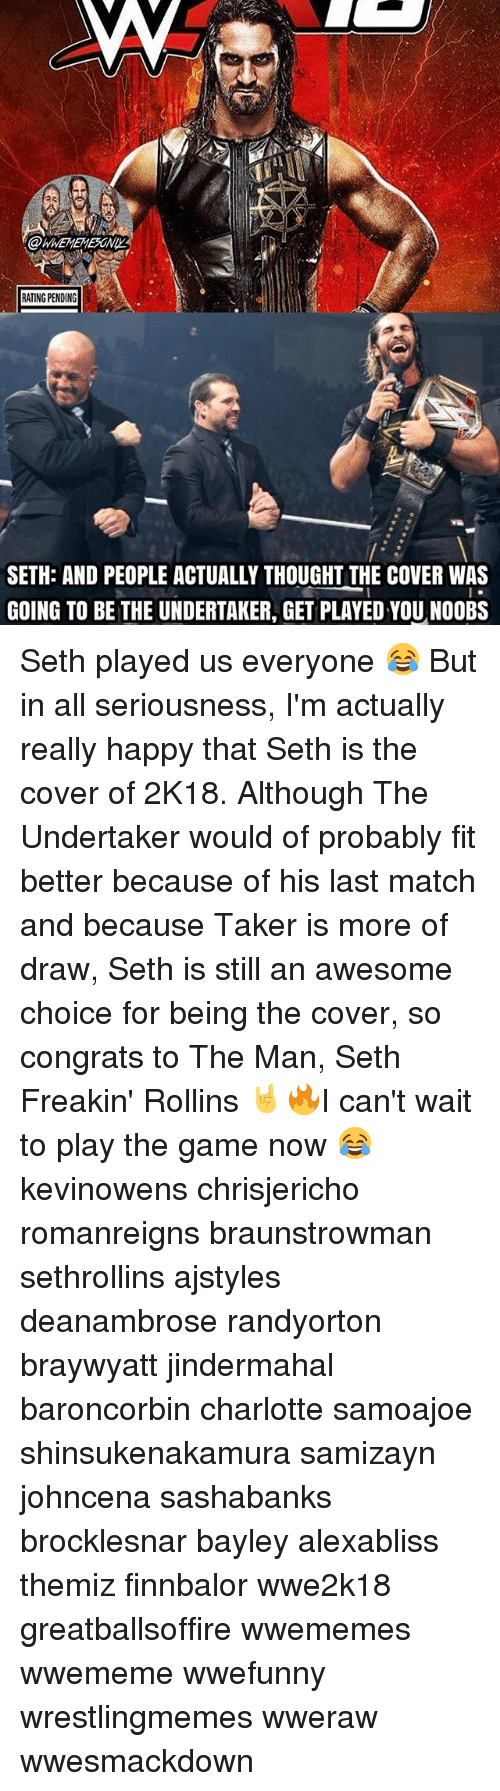 rollins: RATING PENDING  SETH: AND PEOPLE ACTUALLY THOUGHT THE COVER WAS  GOING TO BE THE UNDERTAKER, GET PLAYED YOUNOOBS Seth played us everyone 😂 But in all seriousness, I'm actually really happy that Seth is the cover of 2K18. Although The Undertaker would of probably fit better because of his last match and because Taker is more of draw, Seth is still an awesome choice for being the cover, so congrats to The Man, Seth Freakin' Rollins 🤘🔥I can't wait to play the game now 😂 kevinowens chrisjericho romanreigns braunstrowman sethrollins ajstyles deanambrose randyorton braywyatt jindermahal baroncorbin charlotte samoajoe shinsukenakamura samizayn johncena sashabanks brocklesnar bayley alexabliss themiz finnbalor wwe2k18 greatballsoffire wwememes wwememe wwefunny wrestlingmemes wweraw wwesmackdown